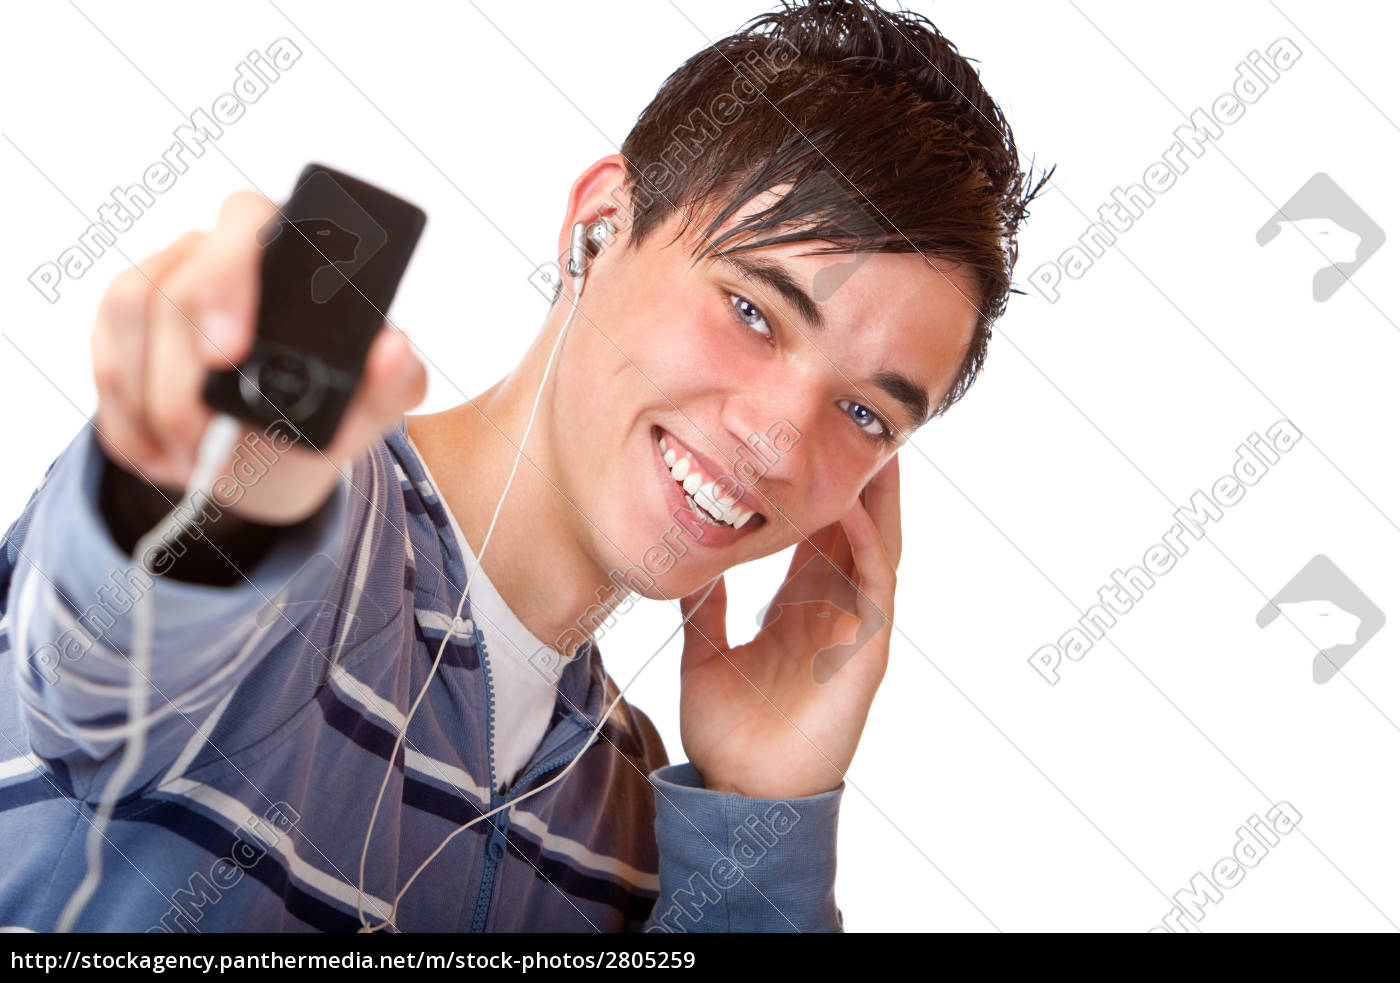 young, male, listening, mp3, music, and - 2805259